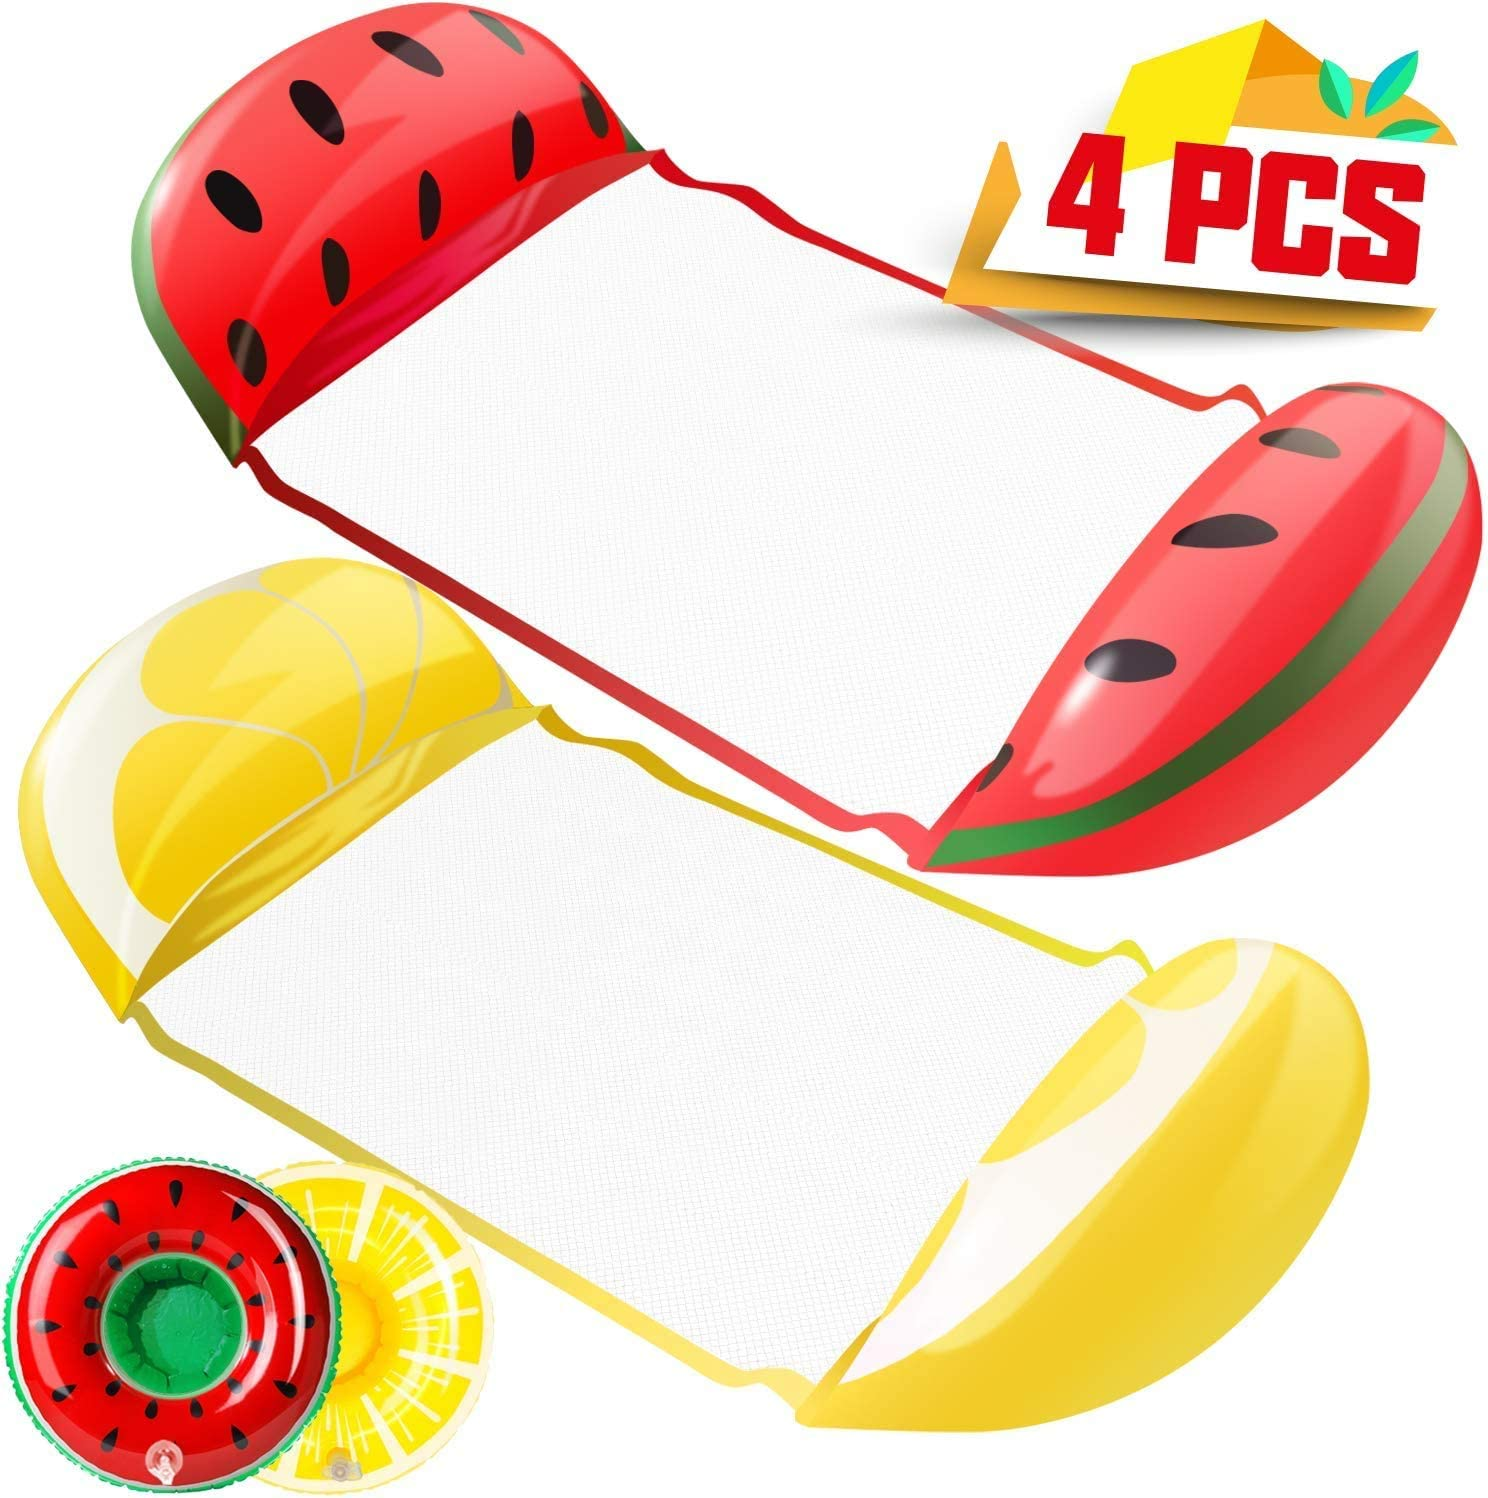 2 Packs Watermelon /& Lemon Inflatable Rafts with Inflatable Drink Holders Compact Floating Devices Gift for Adults /& Children Fruit Swimming Hammock Pool Float